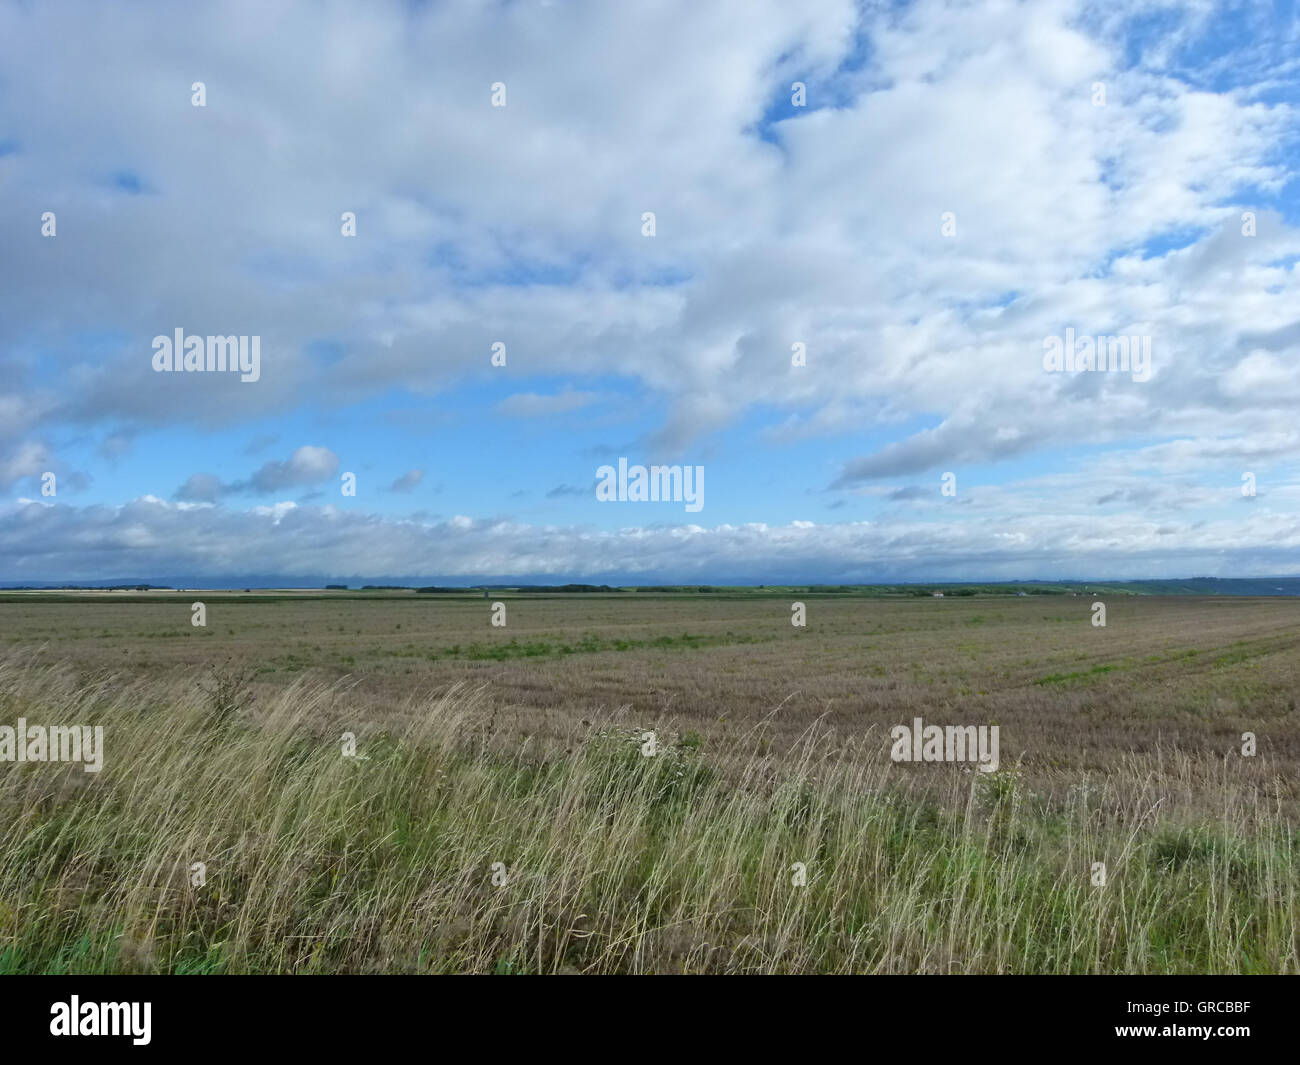 Summery Agricultural Landscape Under Blue Sky With Some White Clouds - Stock Image